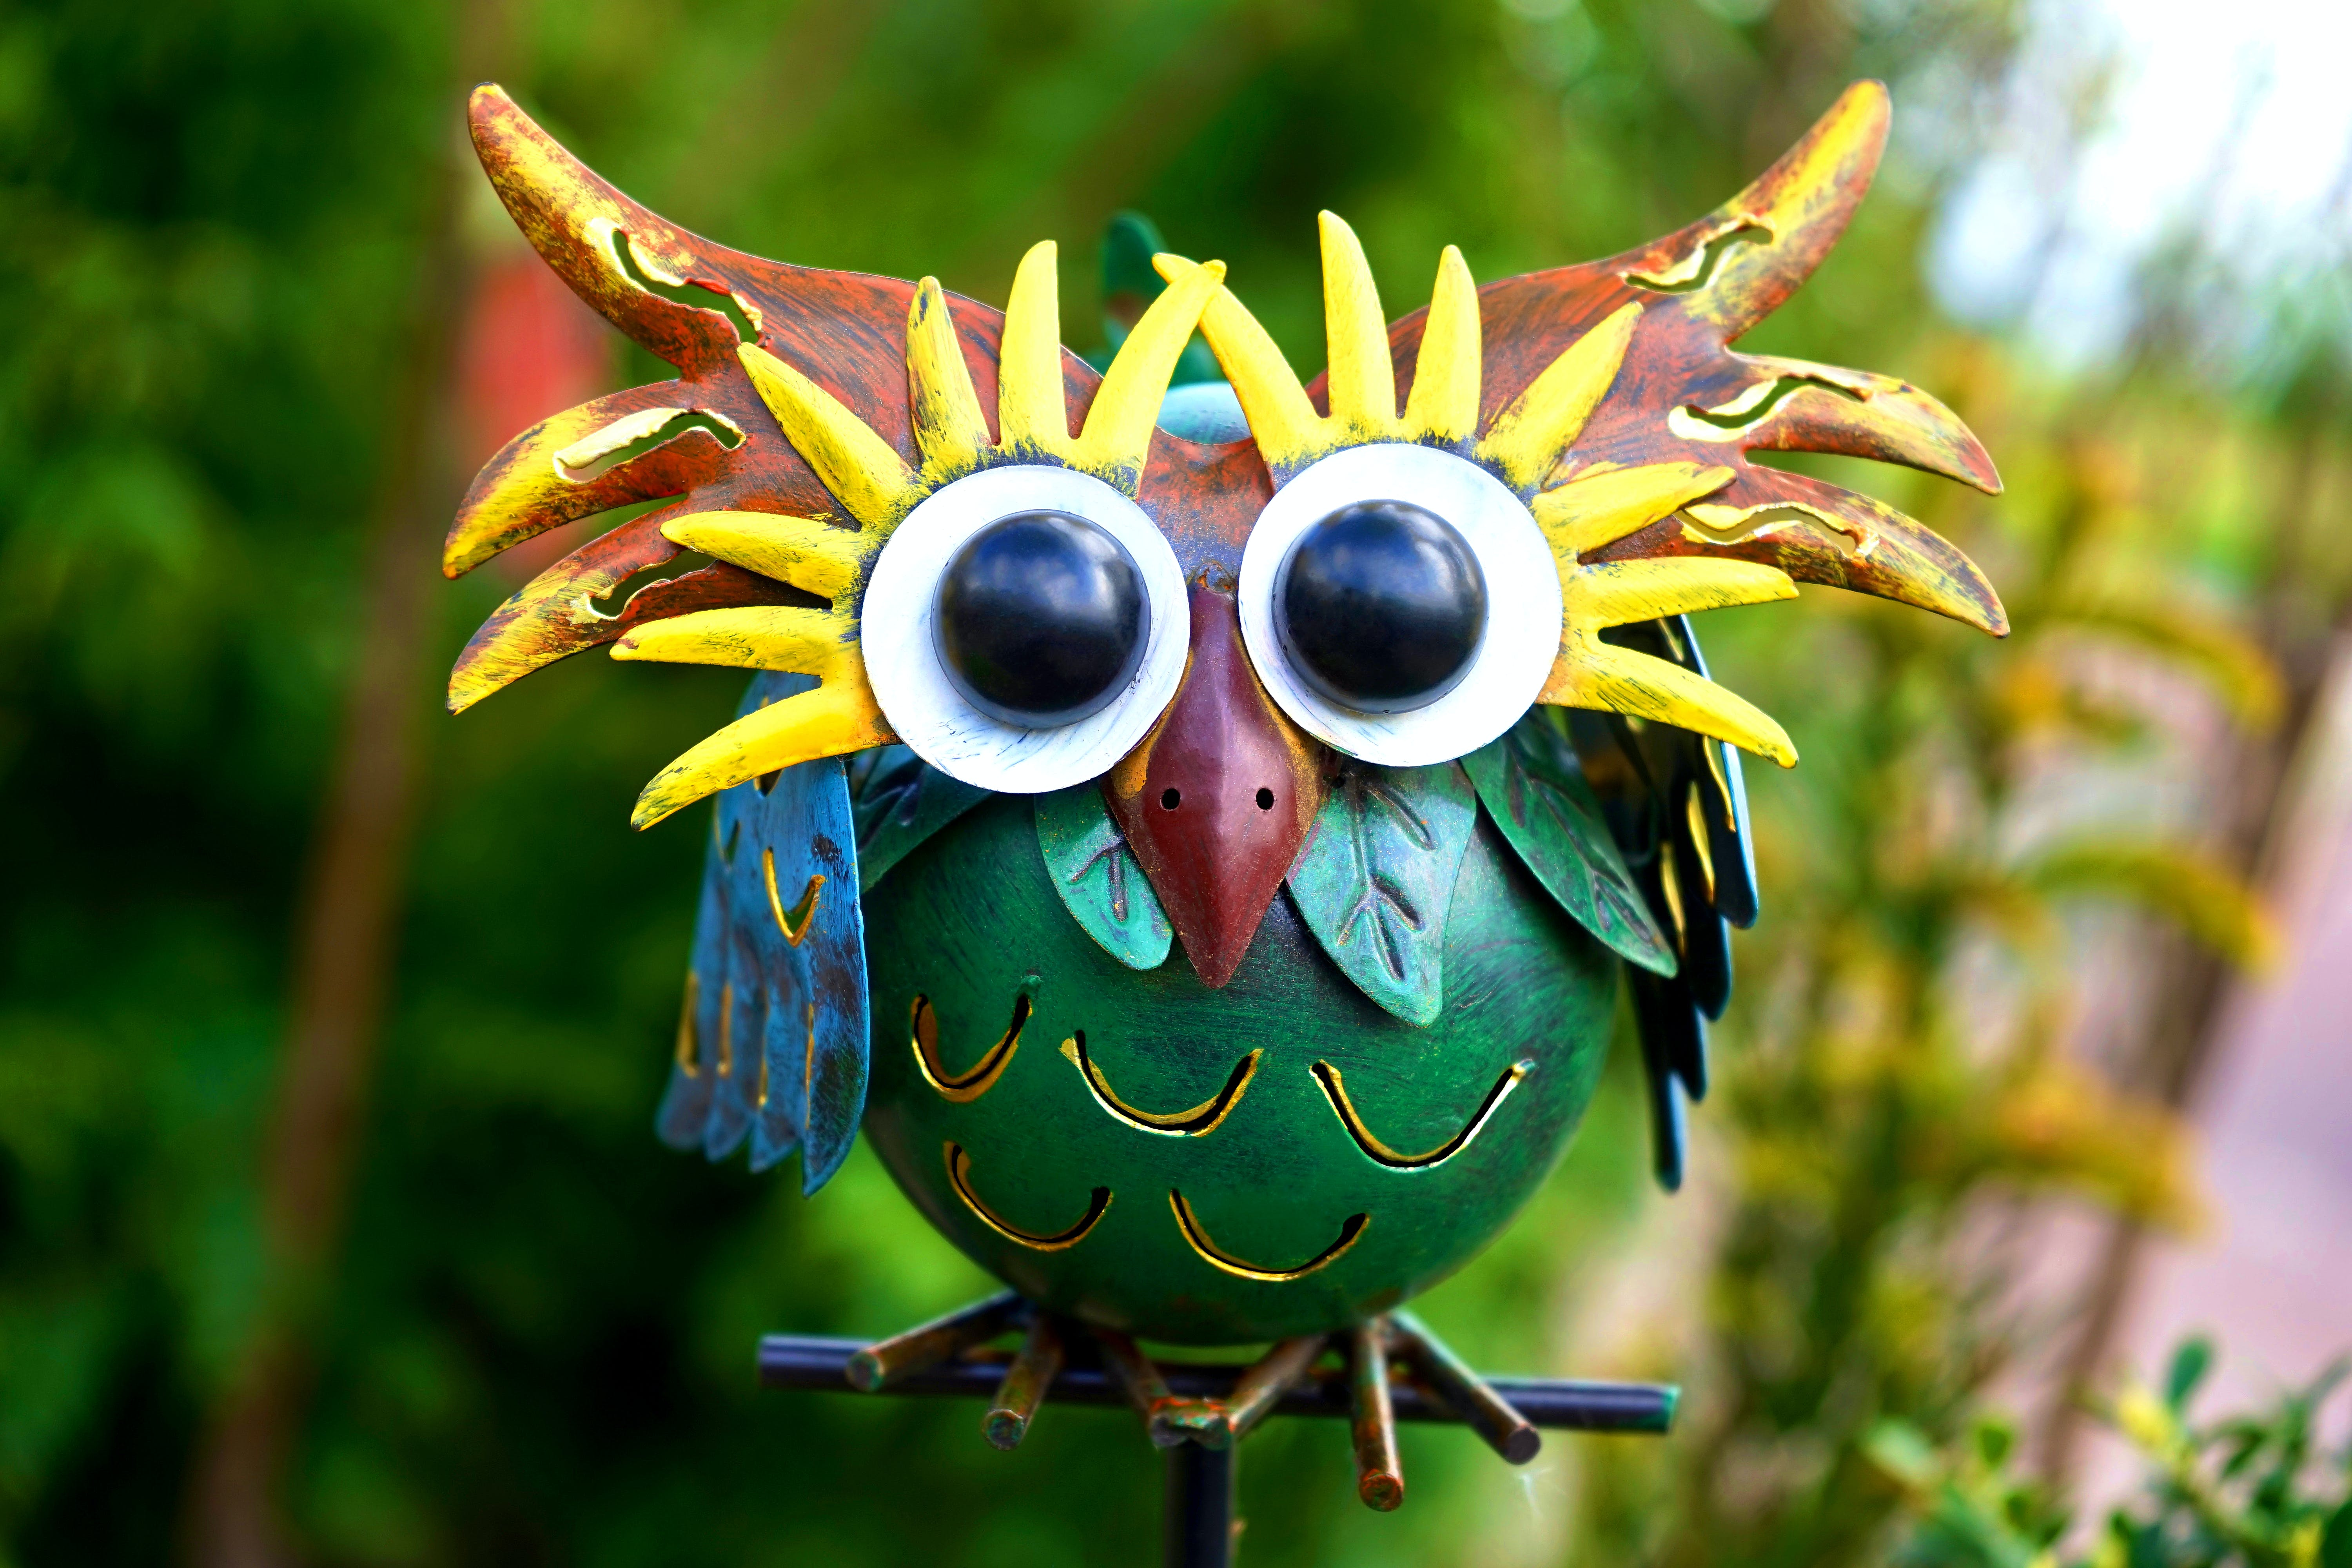 Green and Brown Owl Decor